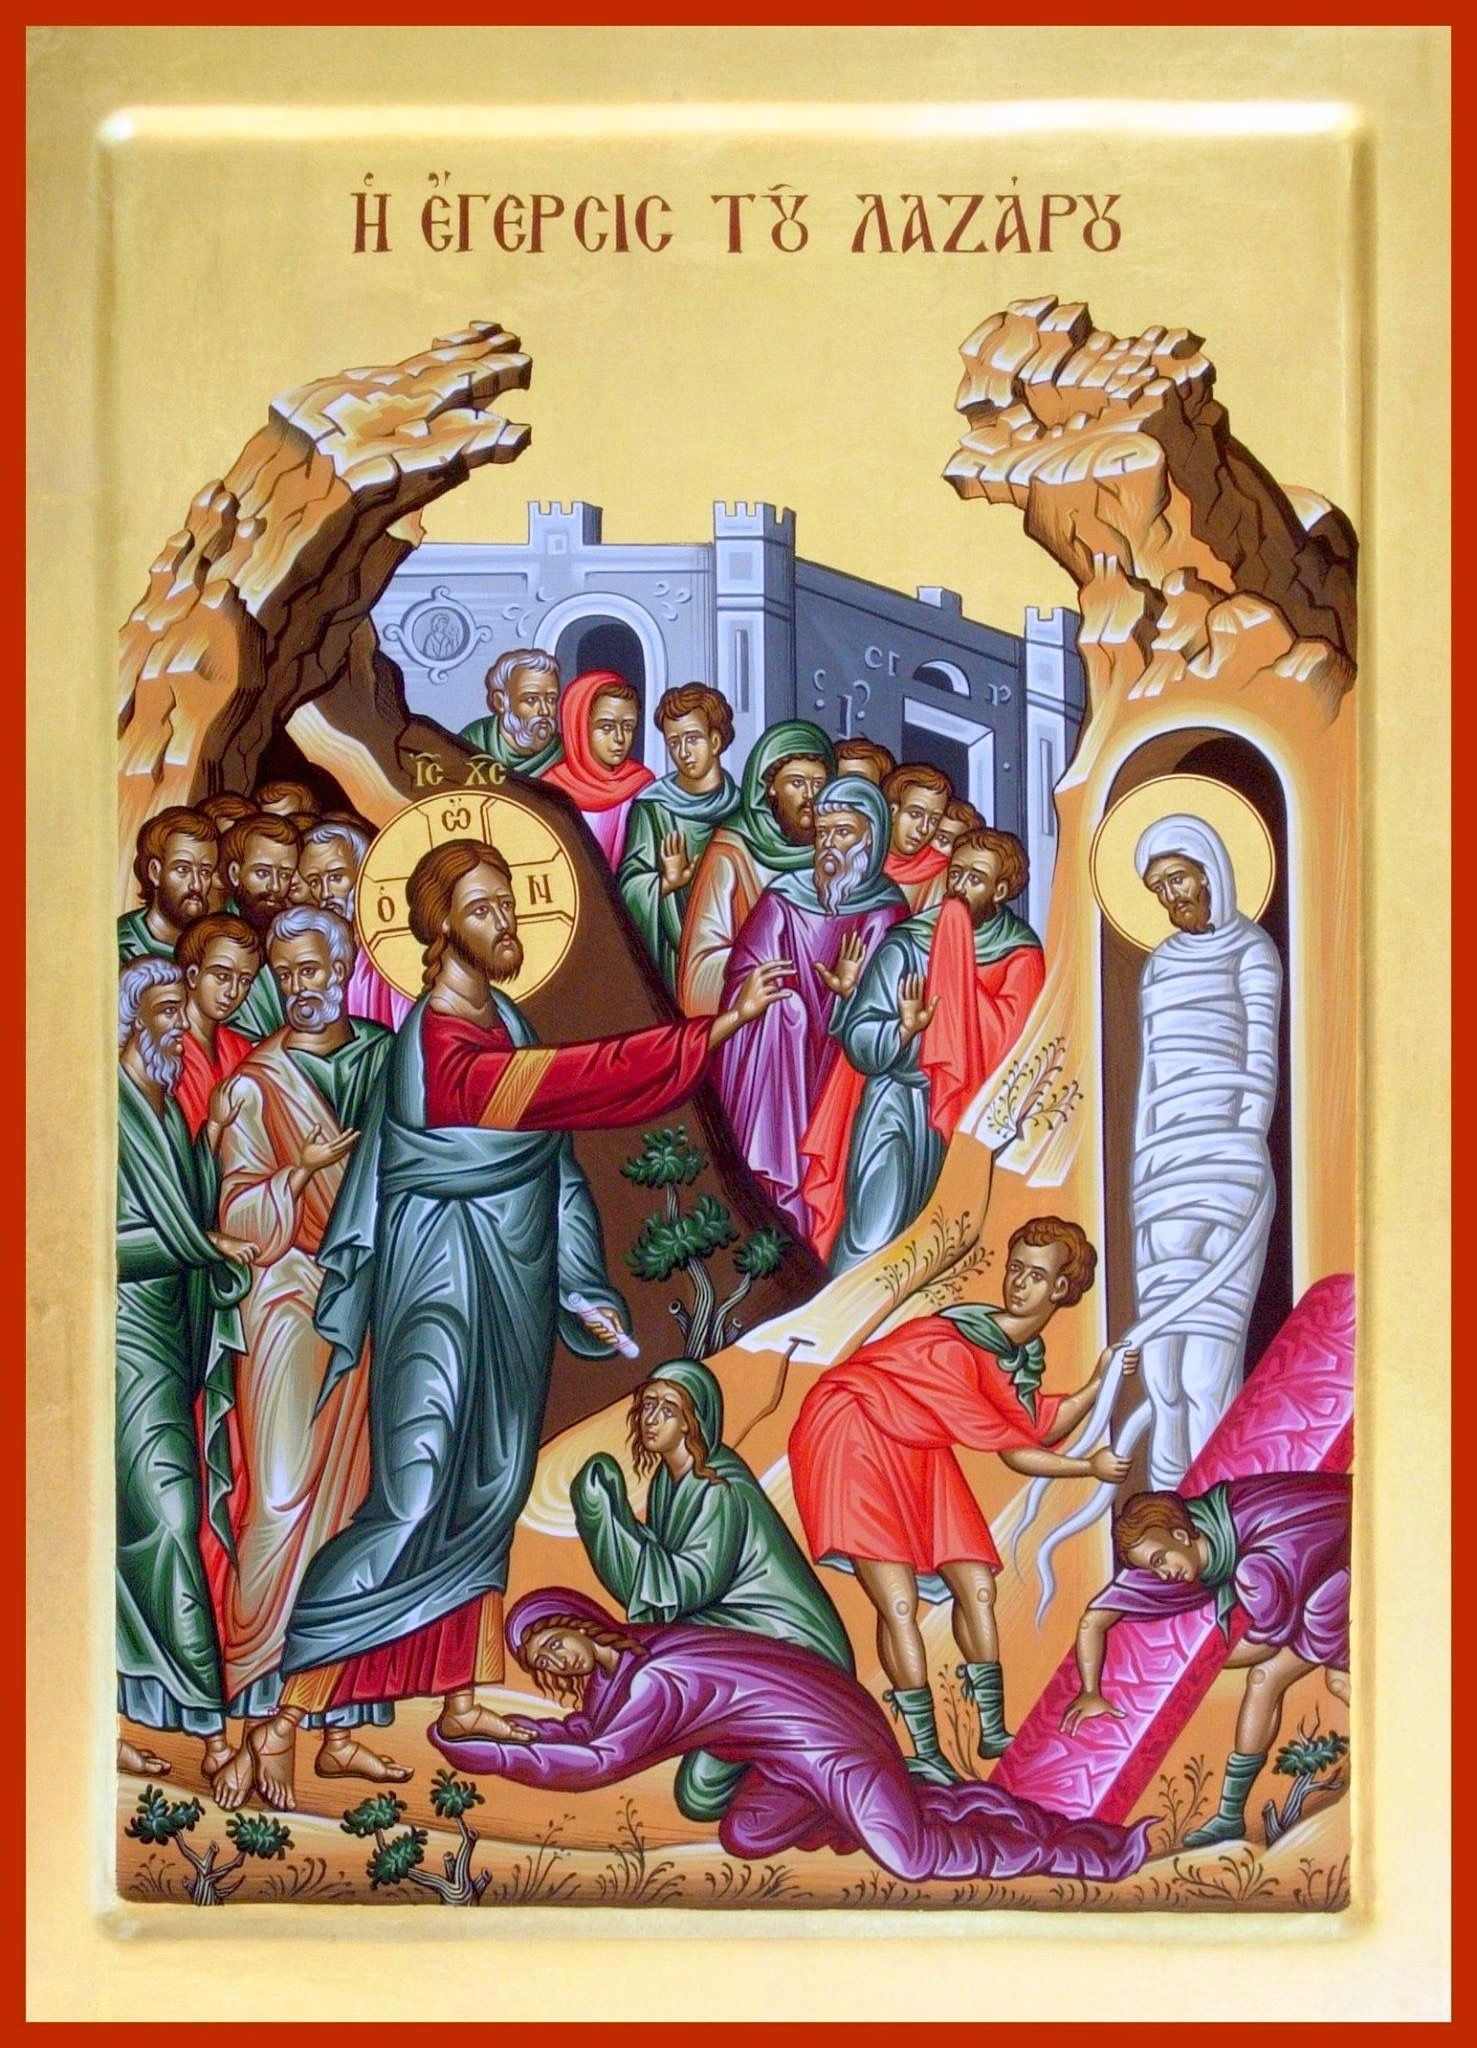 The Icon of the Saturday of Lazarus